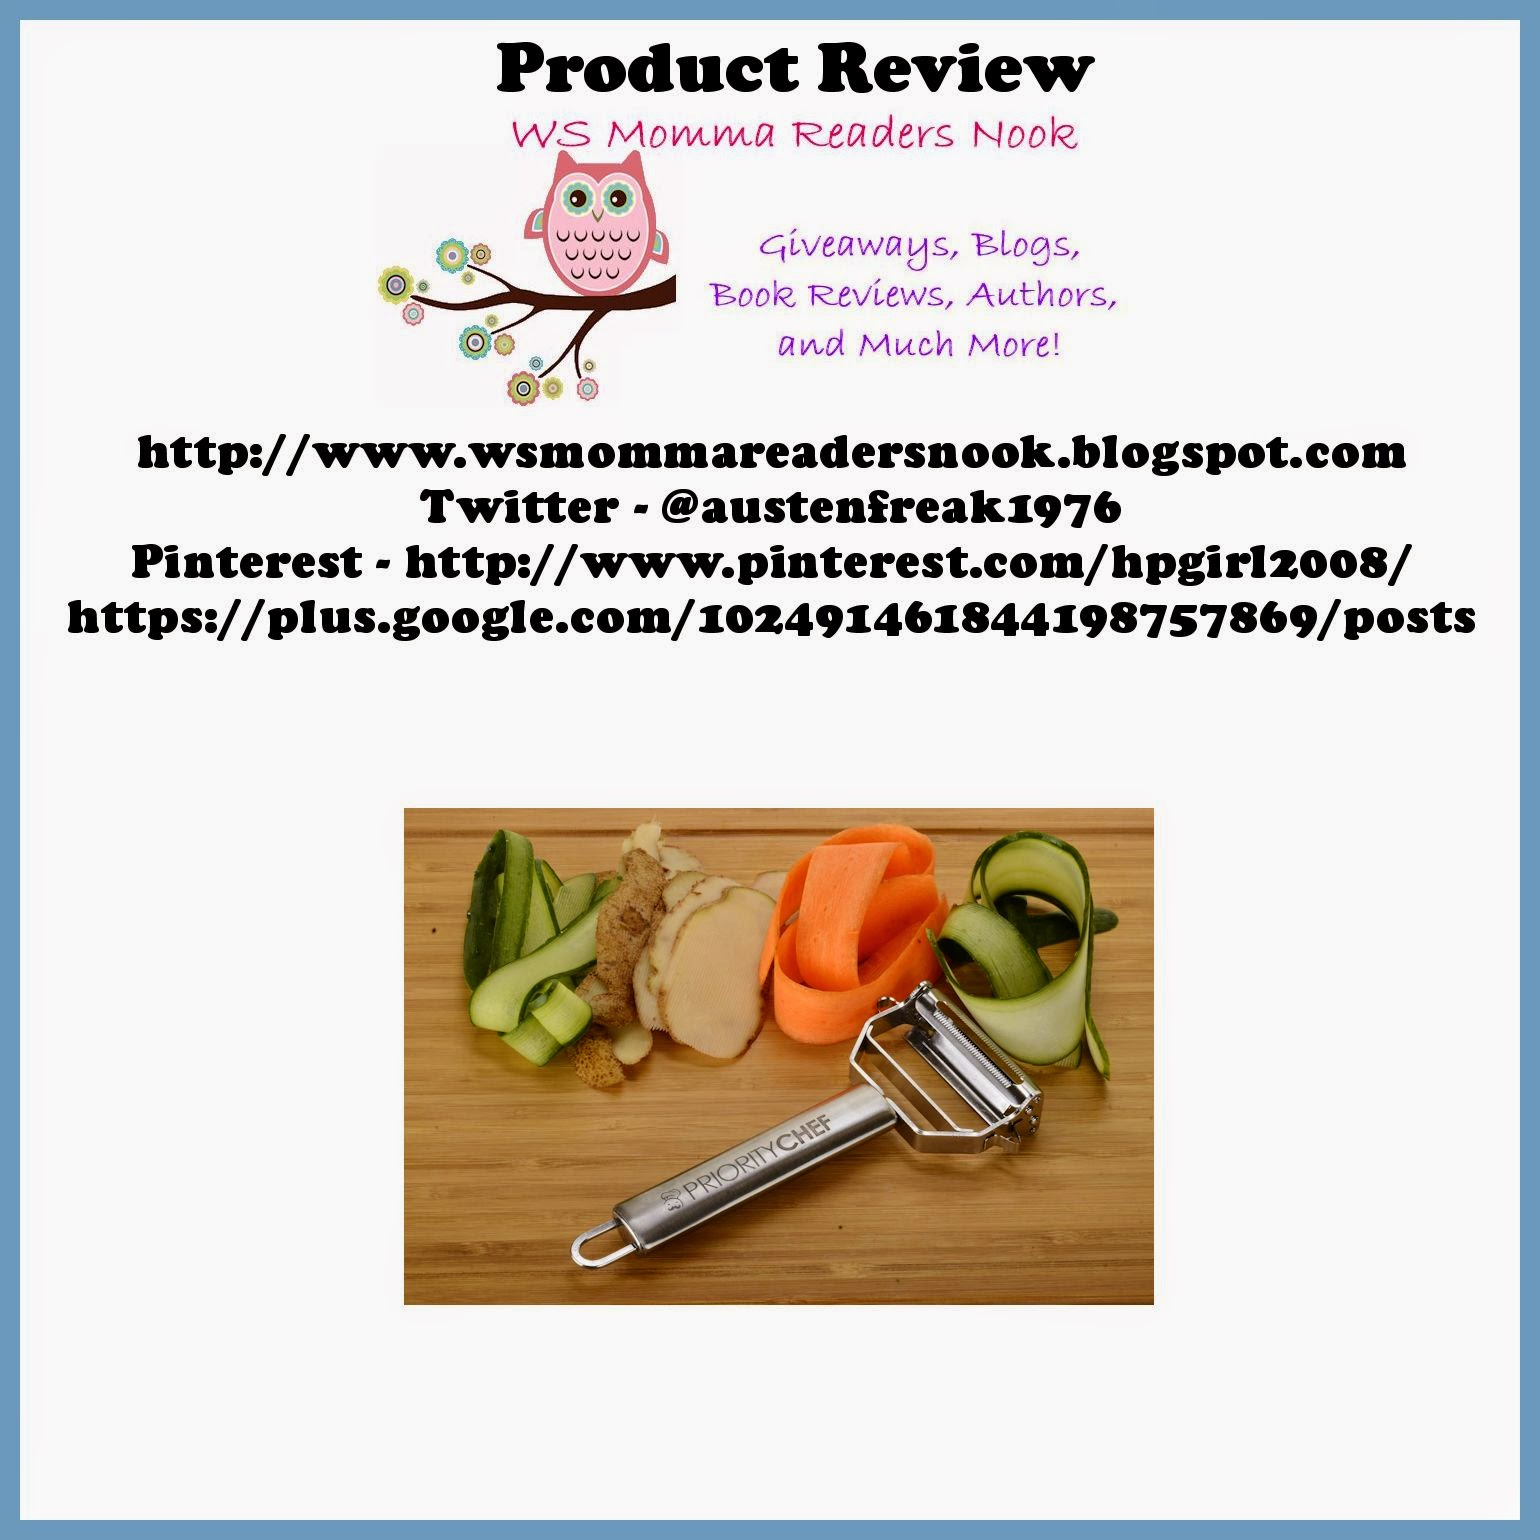 http://www.amazon.com/Julienne-Peeler-Vegetables-Professional-Satisfaction/dp/B00HIAXFCK/ref=sr_1_1?ie=UTF8&qid=1410724985&sr=8-1&keywords=priority+chef+julienne+peeler